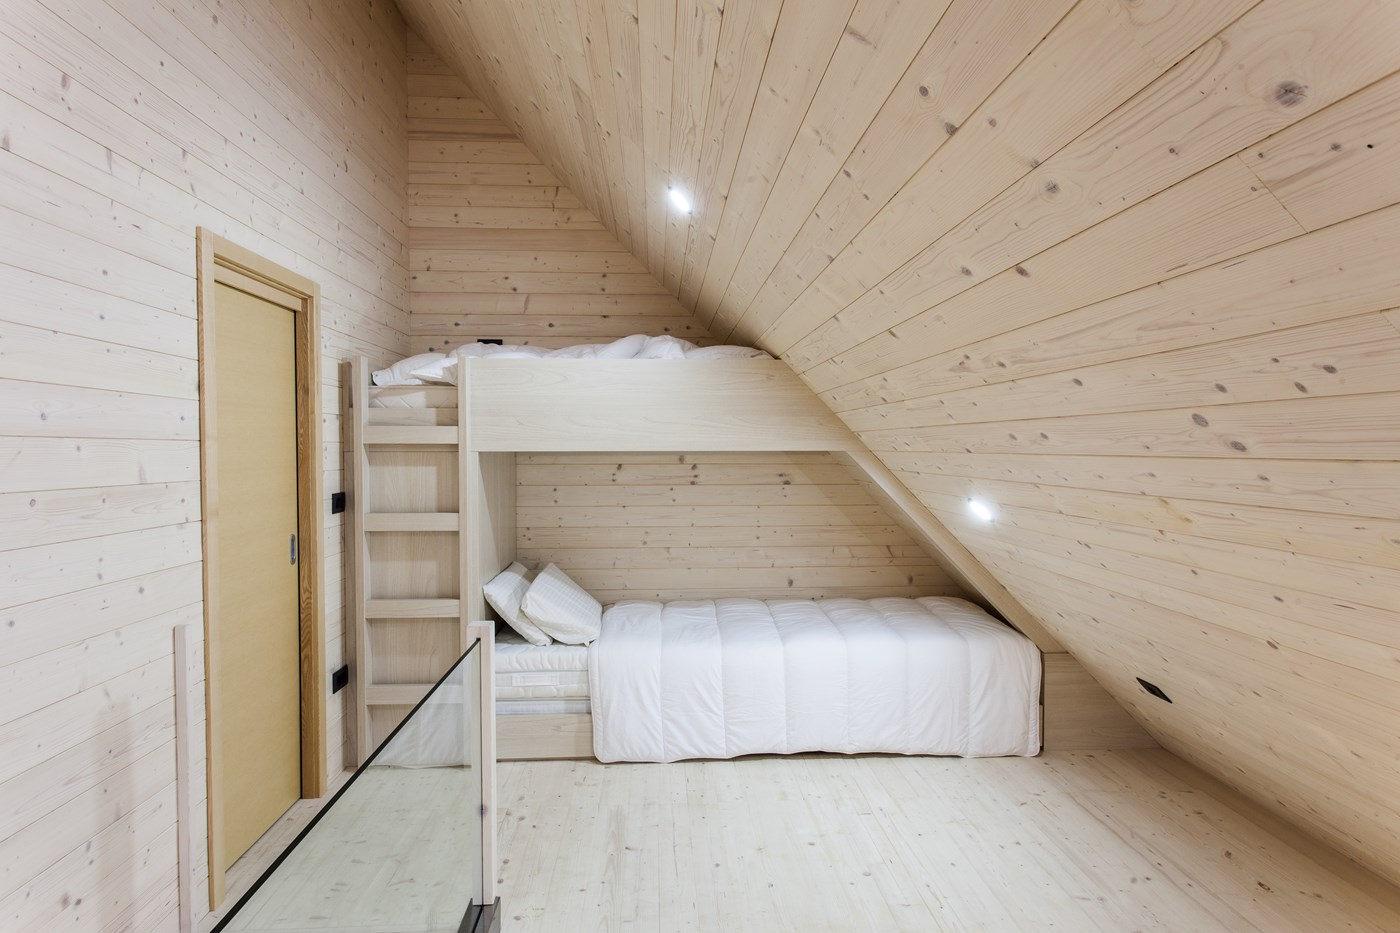 Wooden childrens bedroom design, cabin